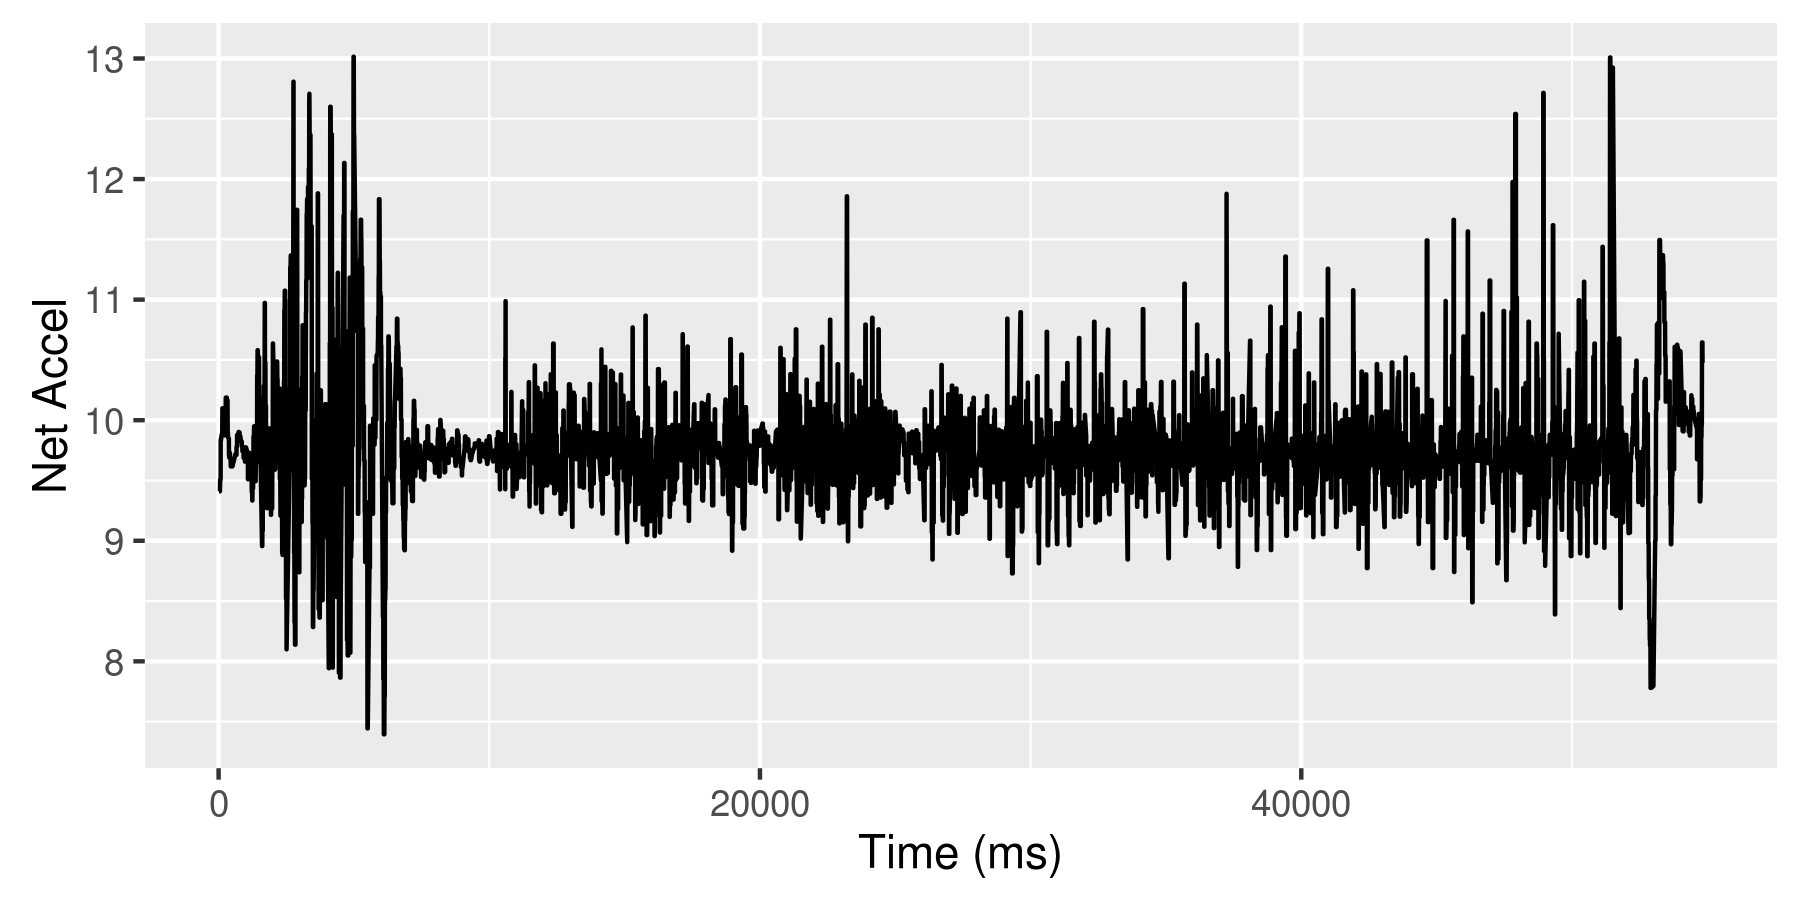 Accelerometer data for the tree